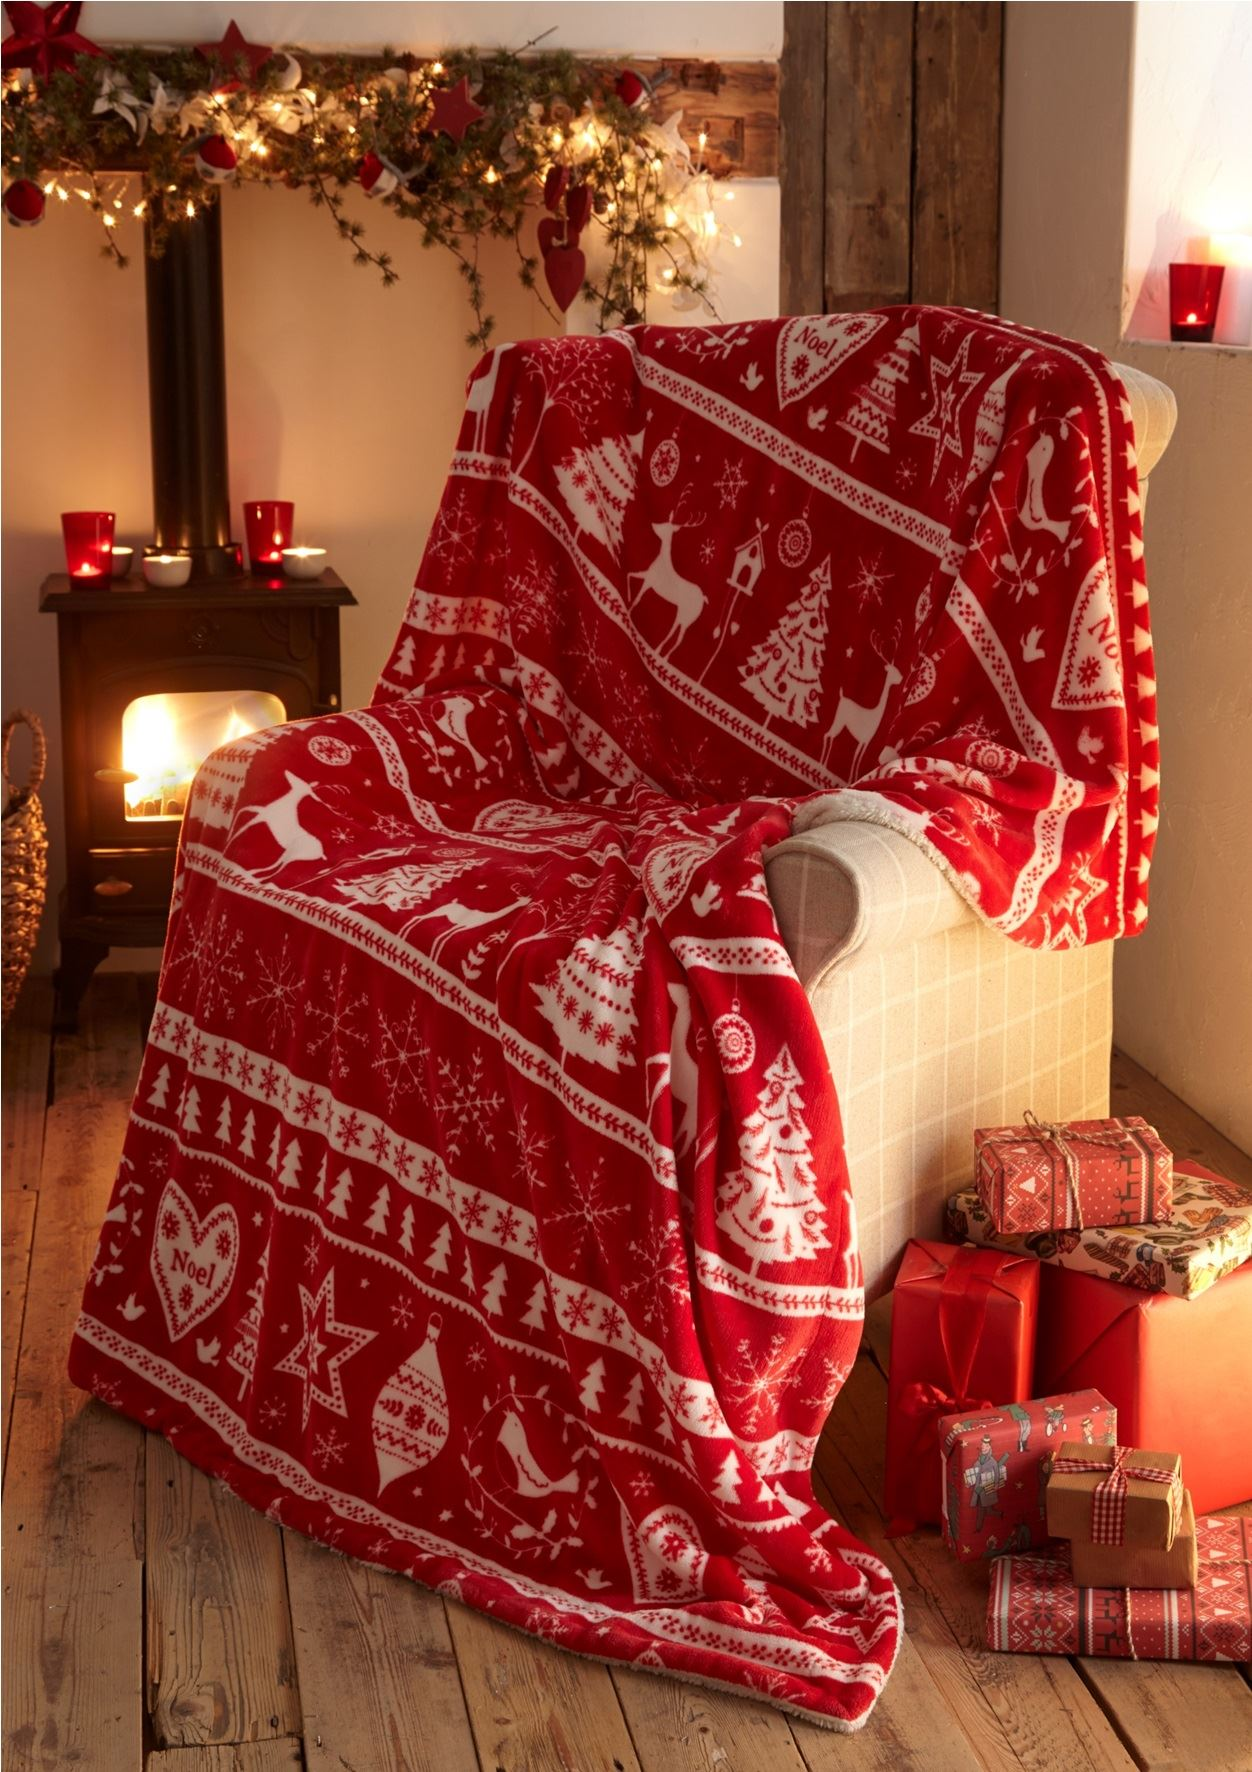 Christmas soft fleece throws decorative bed sofa blanket xmas father christmas ebay - Decorative throws for furniture ...